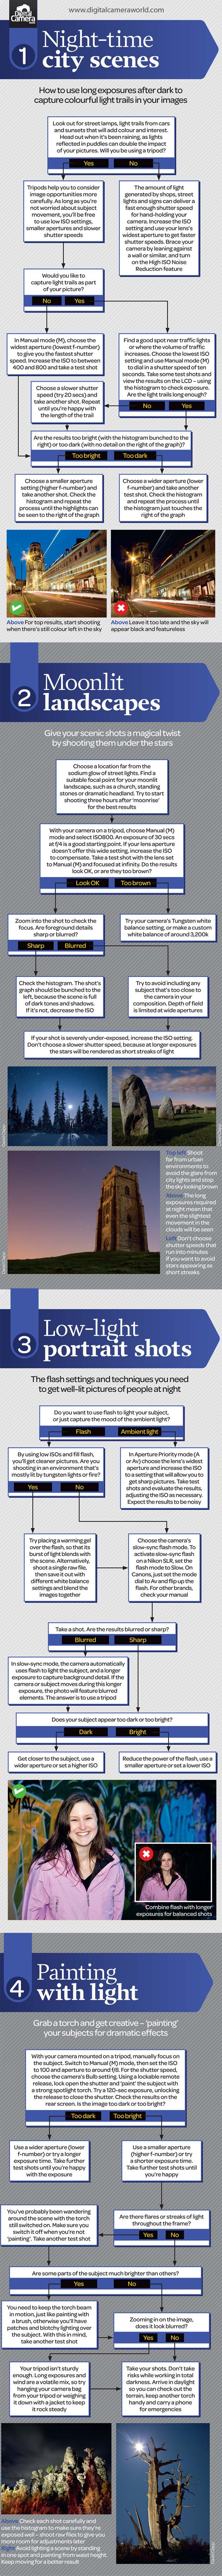 photography cheat sheet | Free night photography cheat sheet: how to shoot popular low-light ...